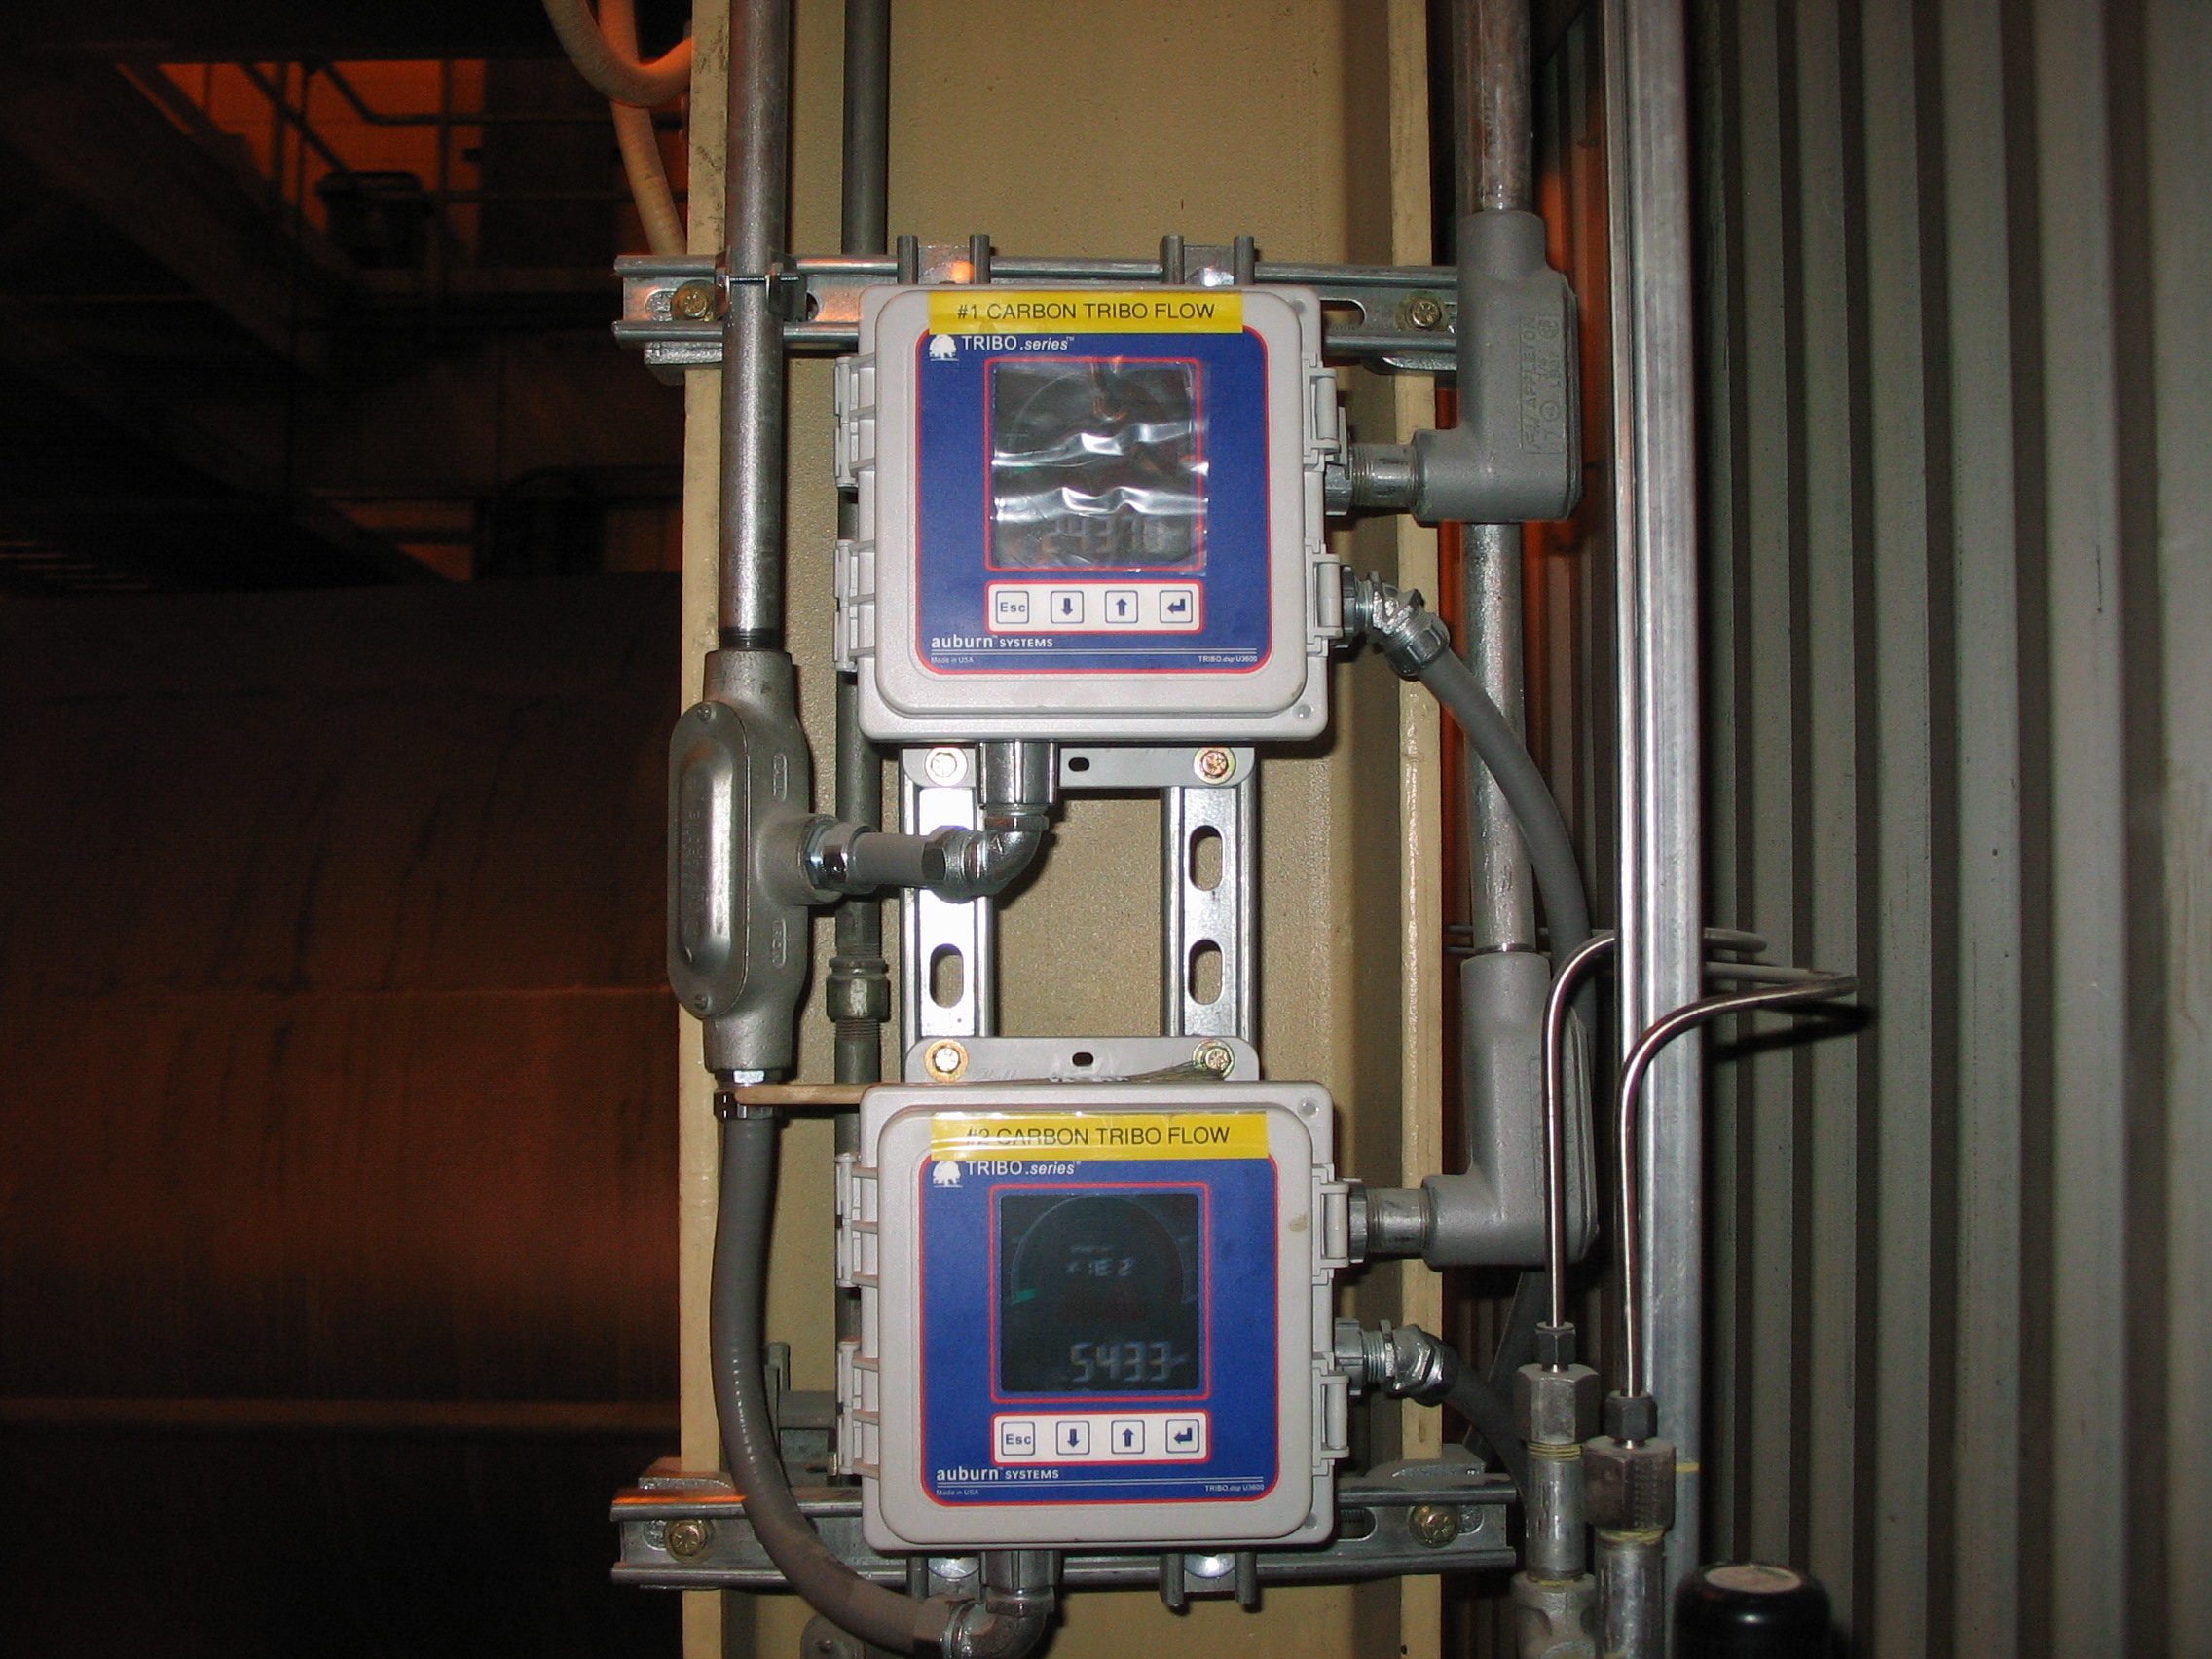 particle velocity monitoring improves pneumatic conveying as an alternative to screw conveyors